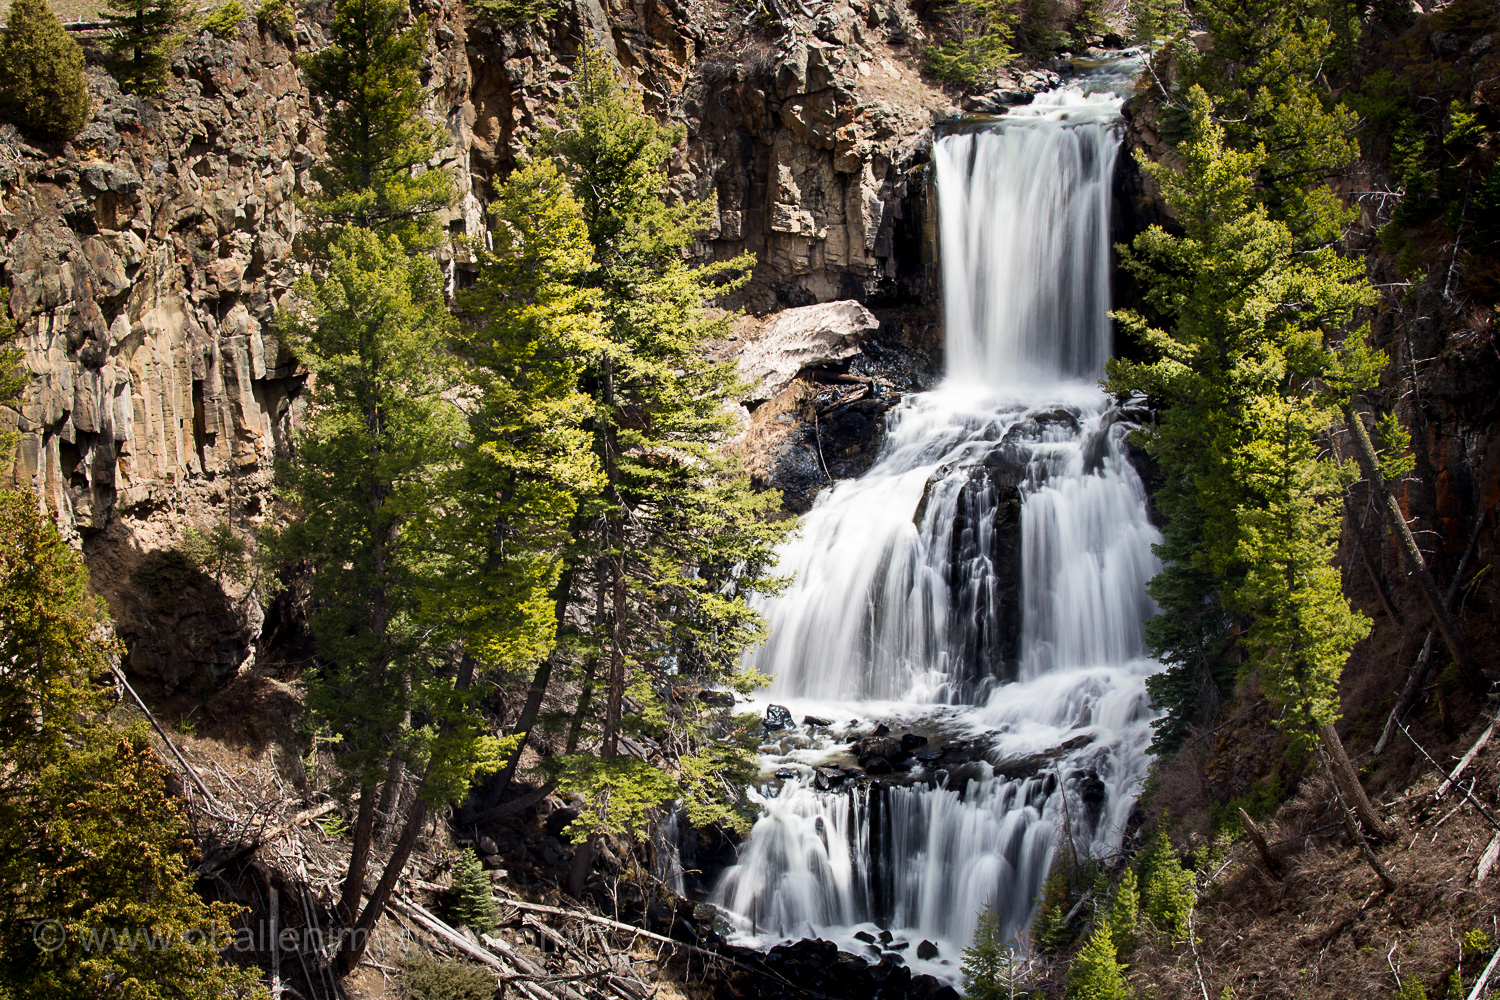 Undine Falls was one of the falls that you can view early in the year.